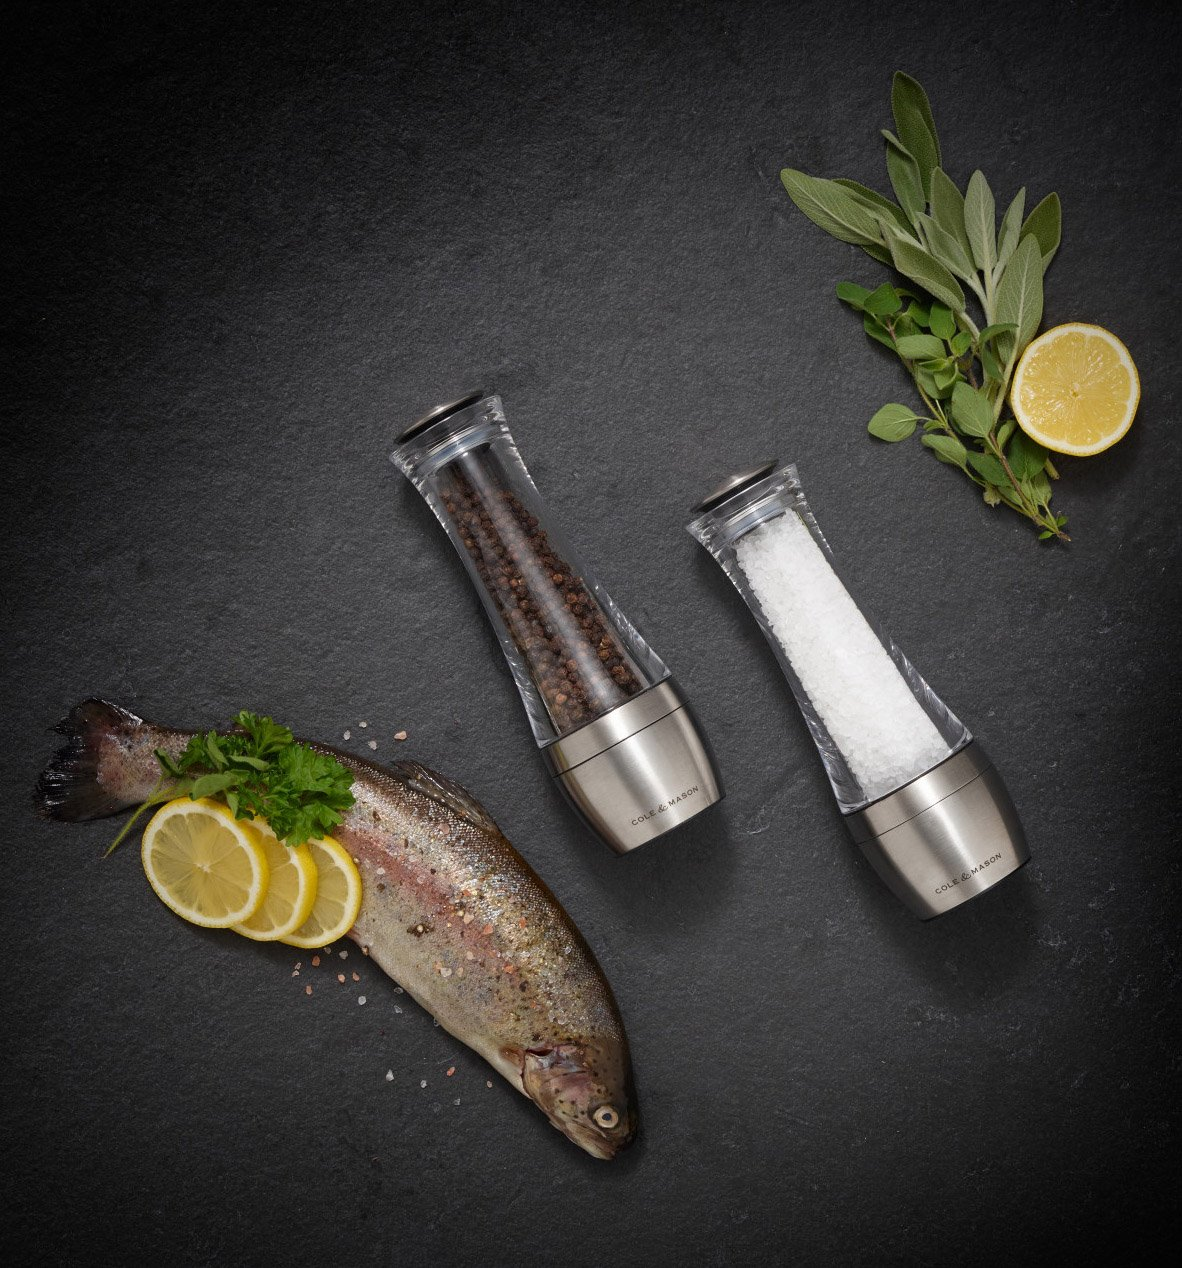 Adjustable Precision Mechanism COLE /& MASON Amesbury Pepper Grinder Durable Stainless Steel Mill With Acrylic Body 7.5 in.